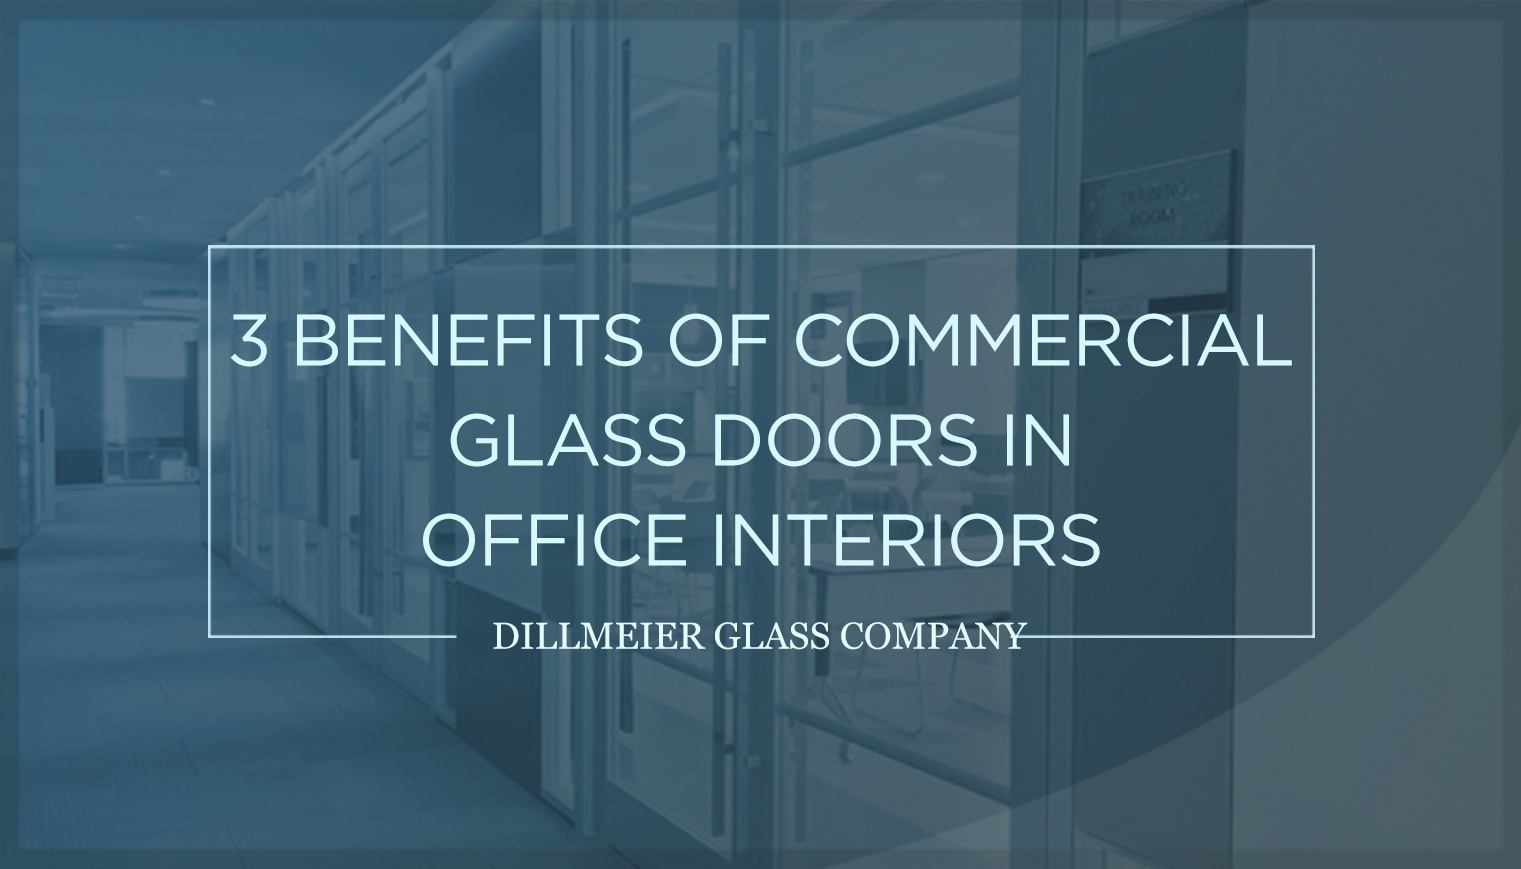 3 Benefits of Commercial Glass Doors in Office Interiors